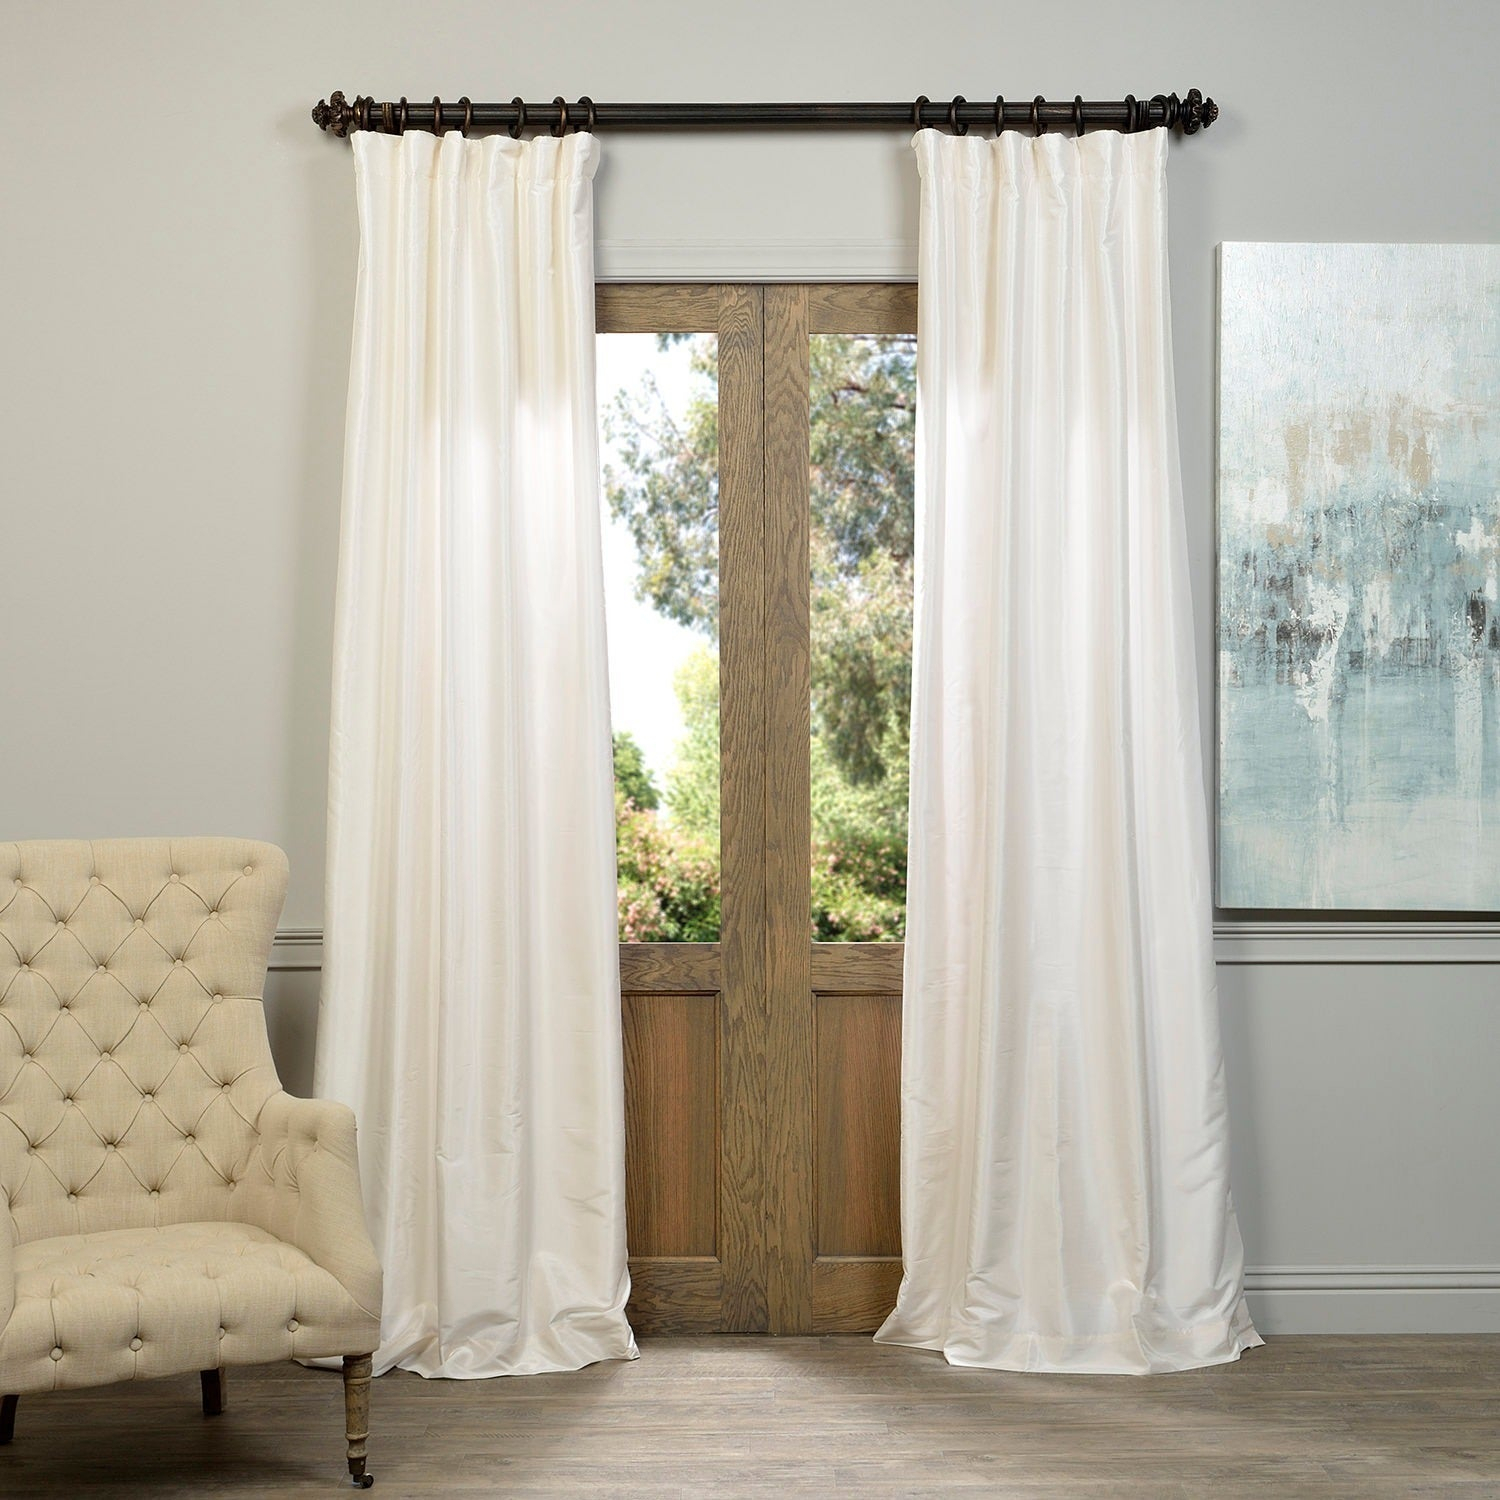 Exclusive Fabrics Off White Vintage Faux Textured Dupioni Silk Curtain | Overstock Shopping – The Best Deals On Curtains Intended For Off White Vintage Faux Textured Silk Curtains (View 2 of 20)